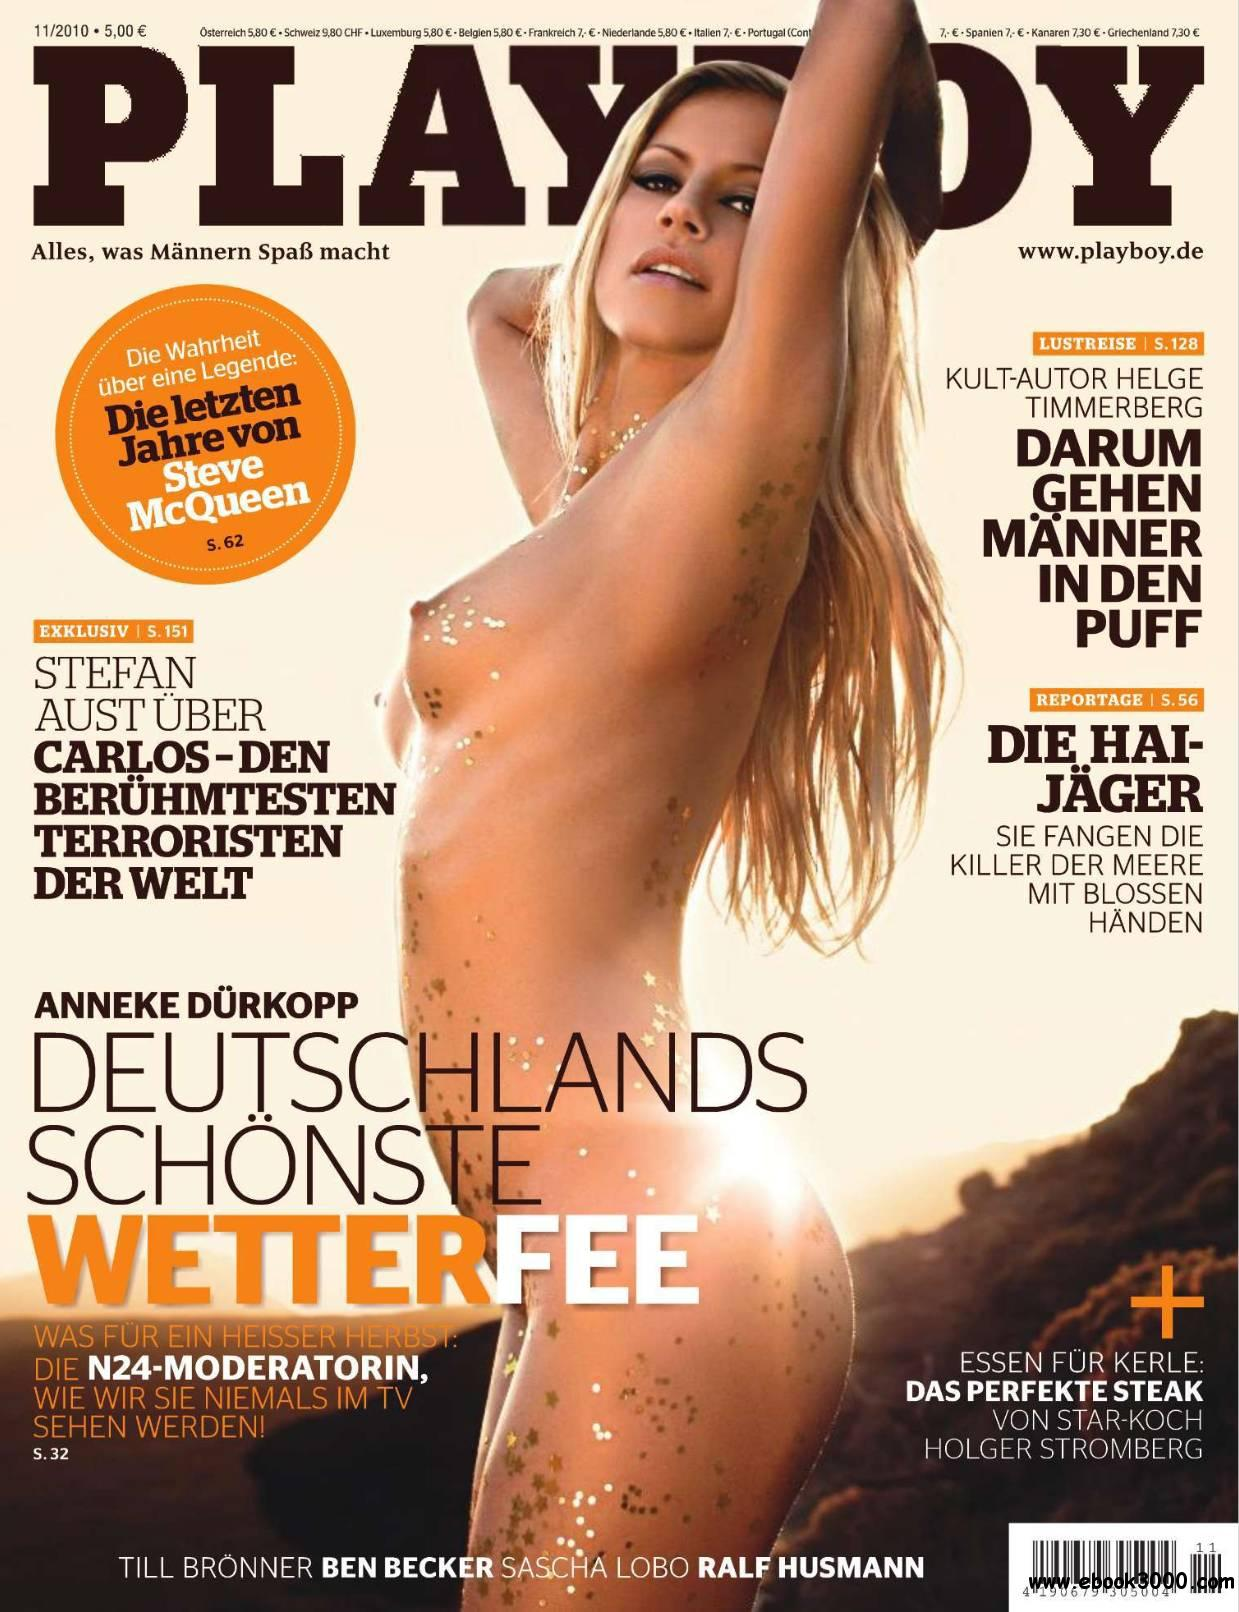 Playboy Germany - November 2010 free download